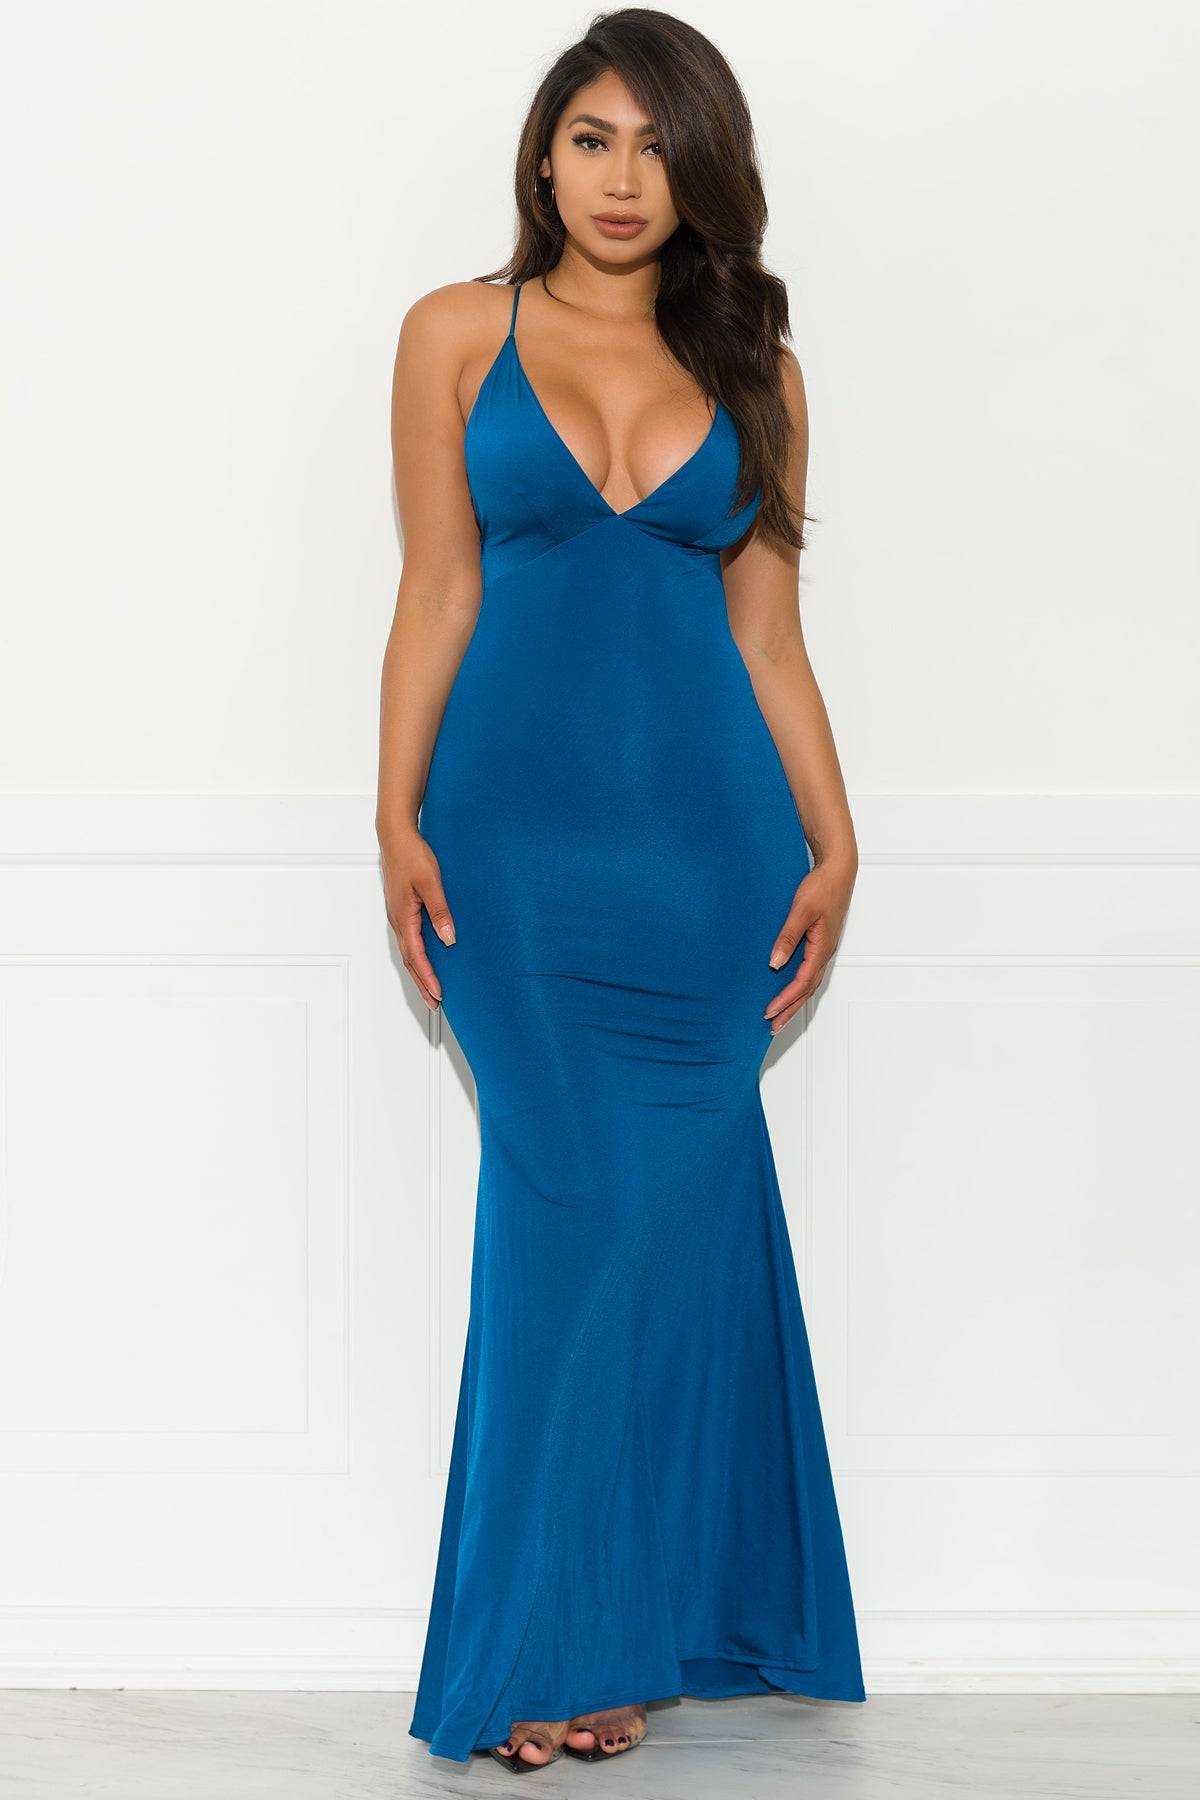 Elegant Affair Dress - Indigo Blue